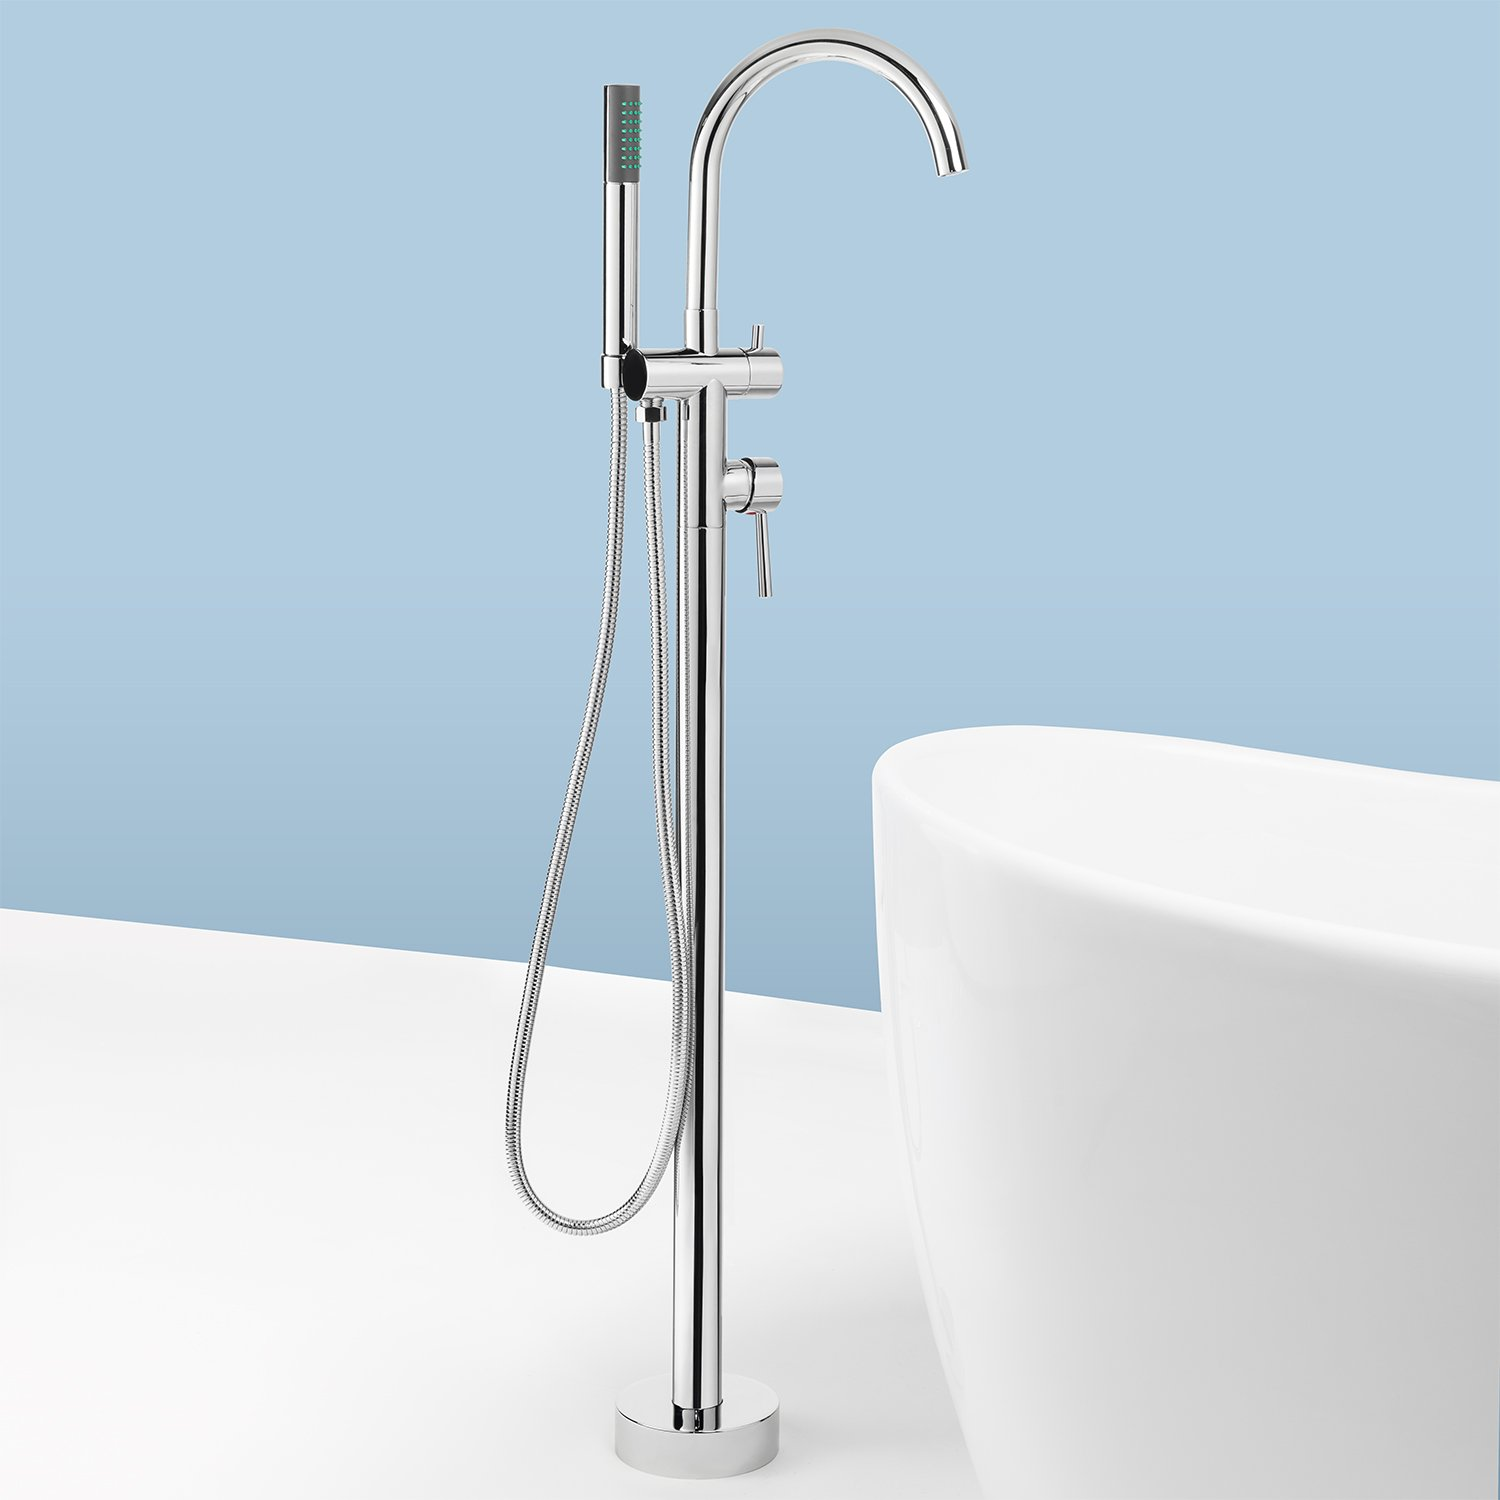 AKDY 8723 Contemporary Freestanding Floor Mount Bath Tub Filler ...